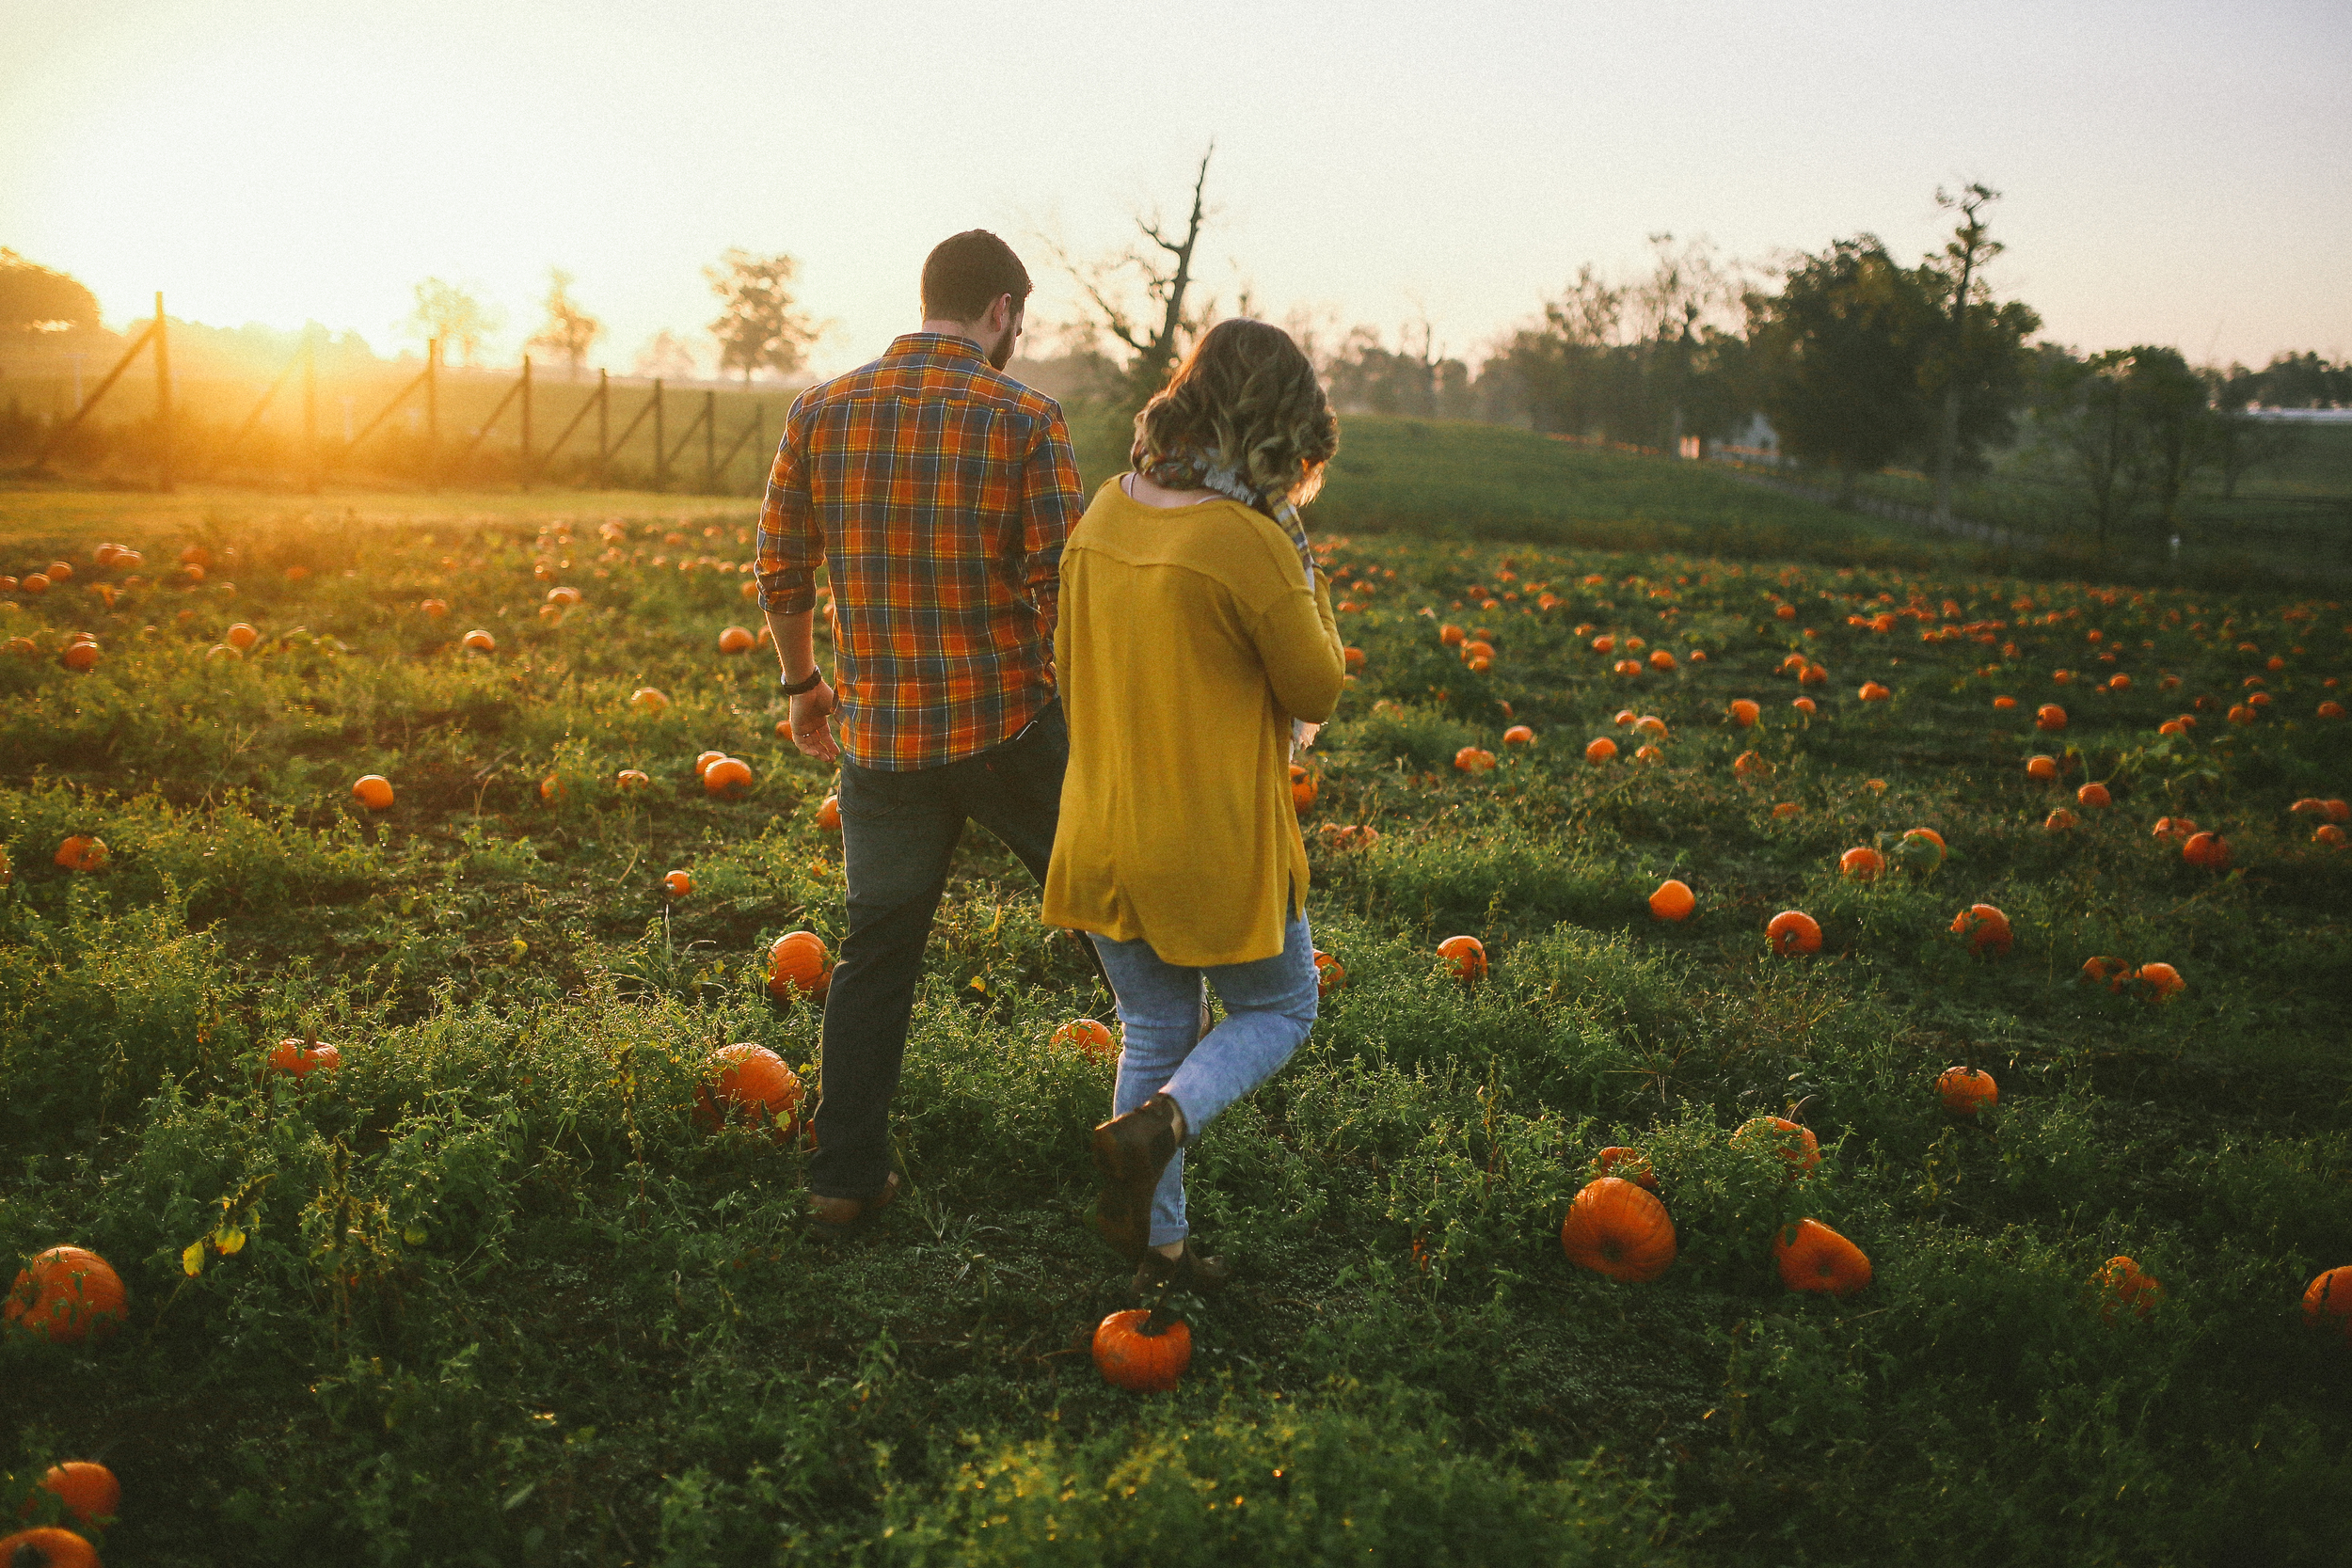 sunrise pumpkin patch engagement photography for adventure in kentucky